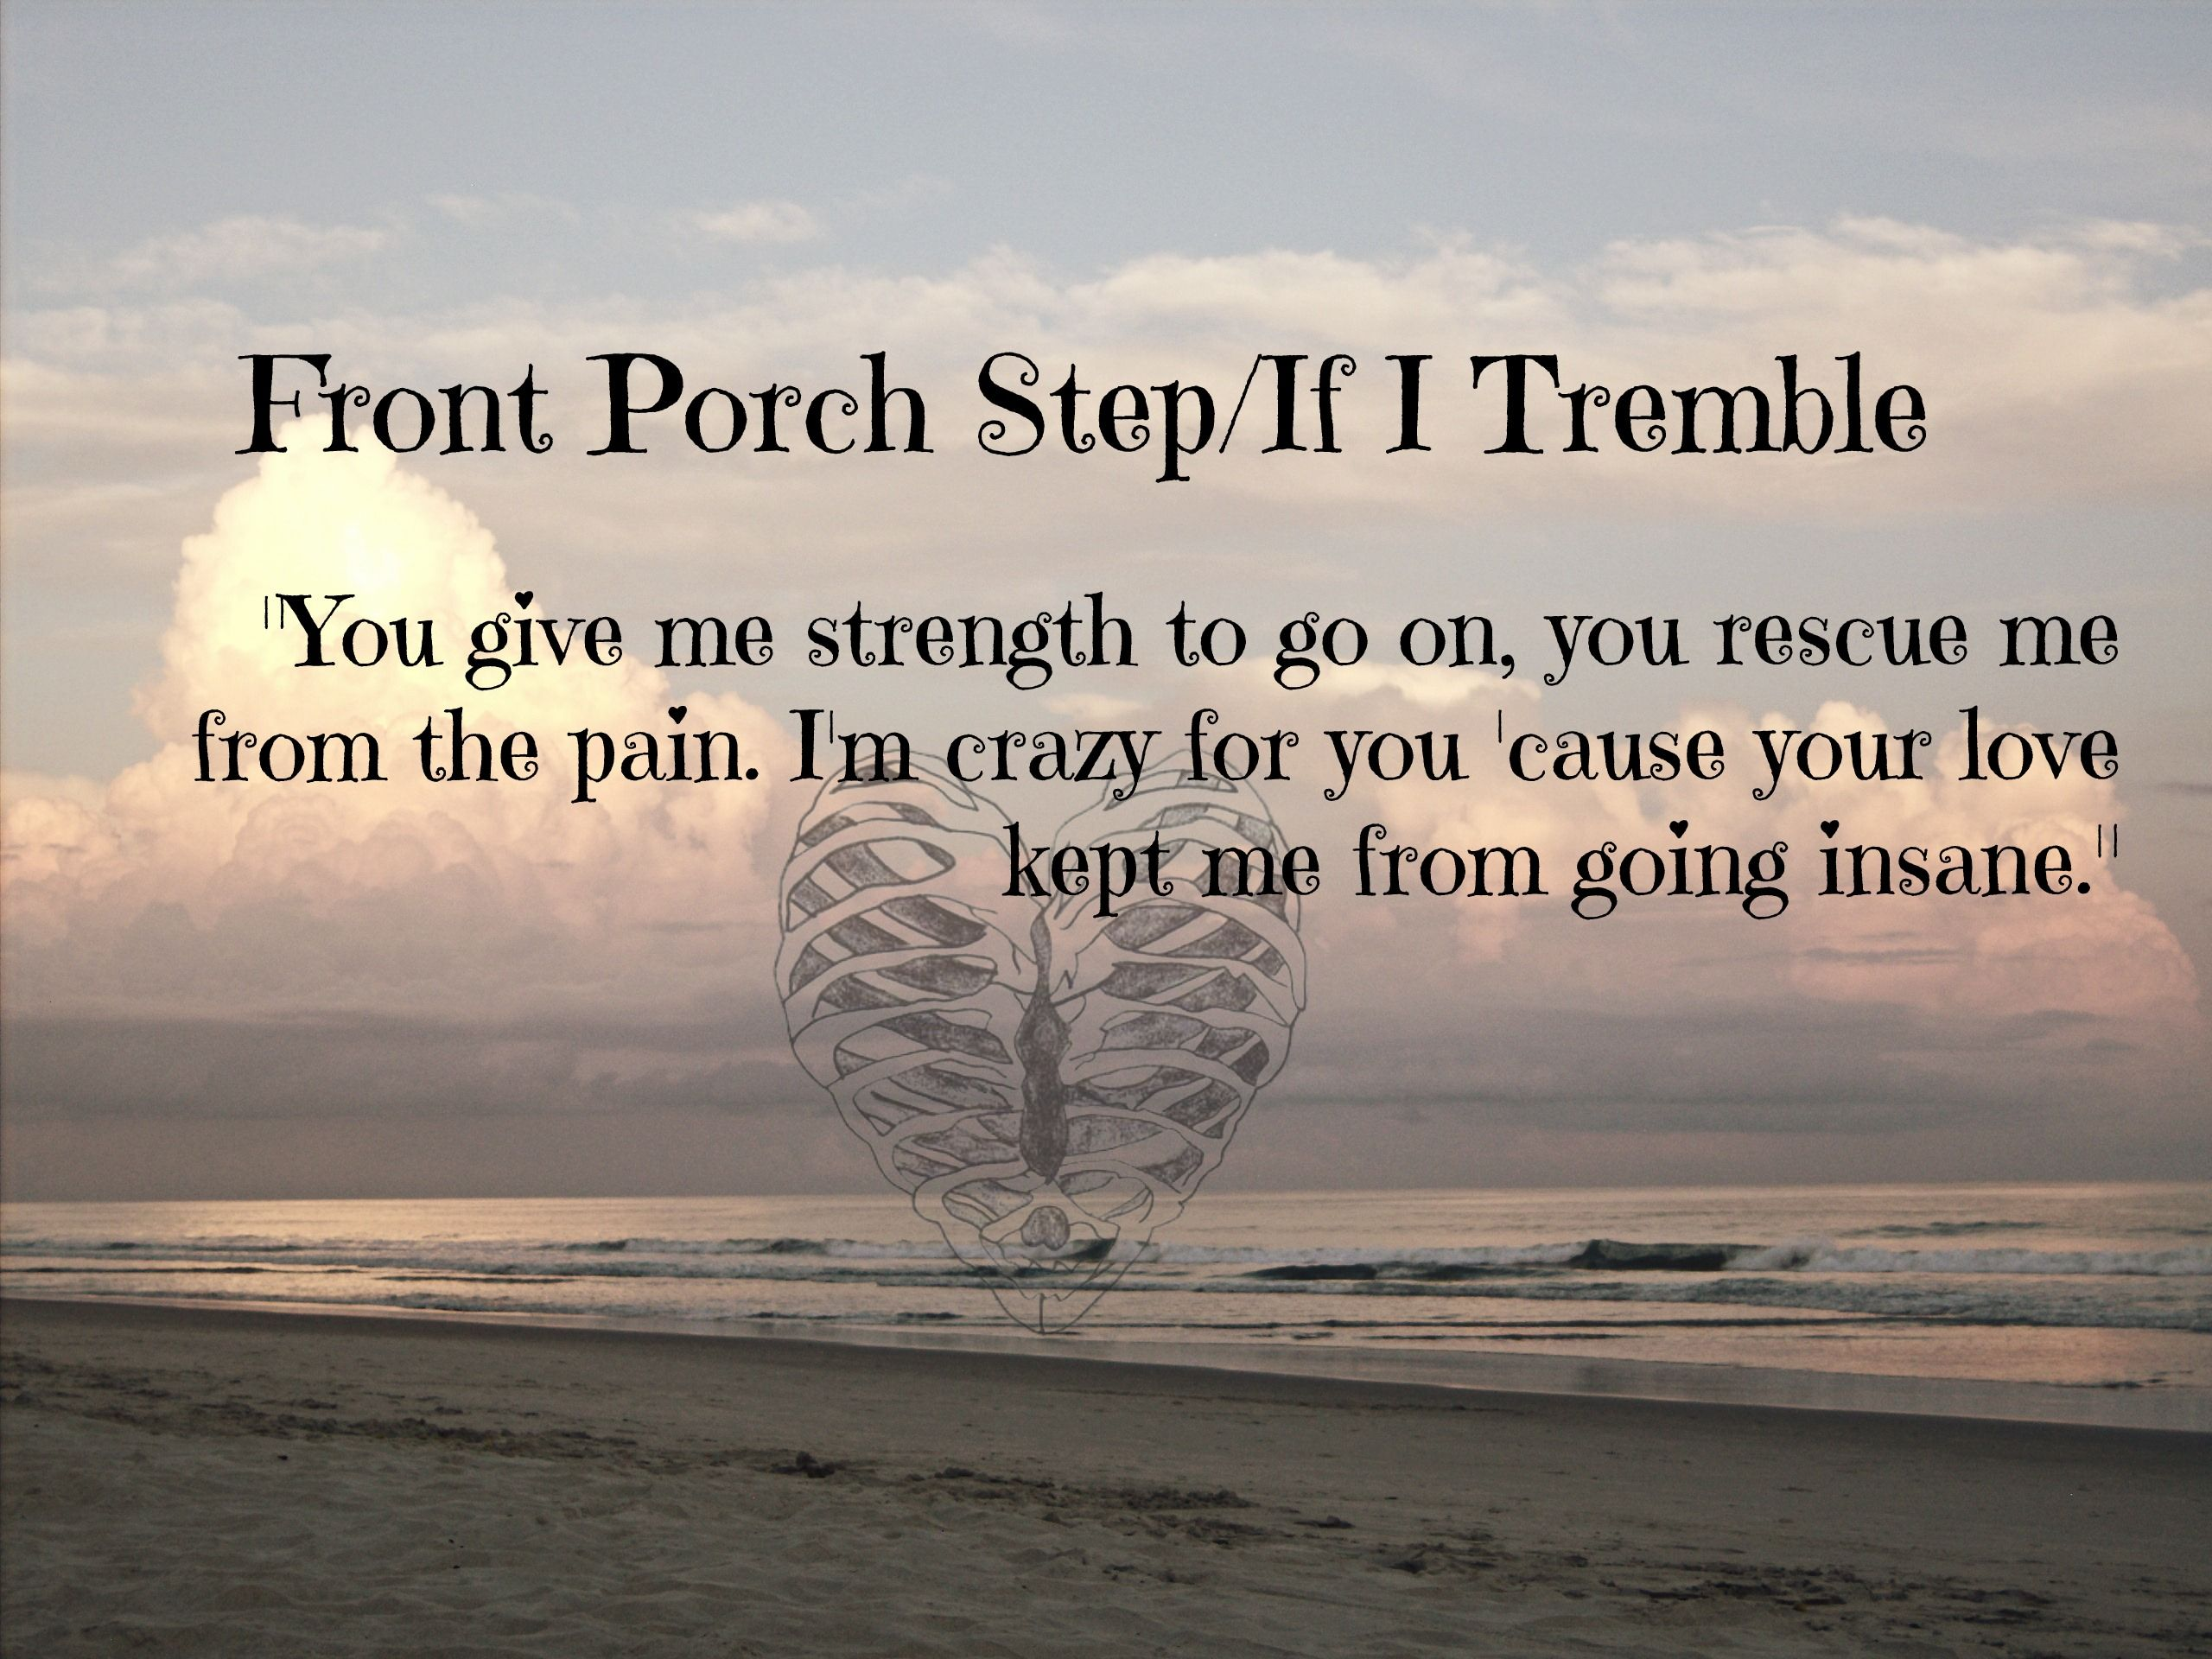 If I Tremble Front Porch Step